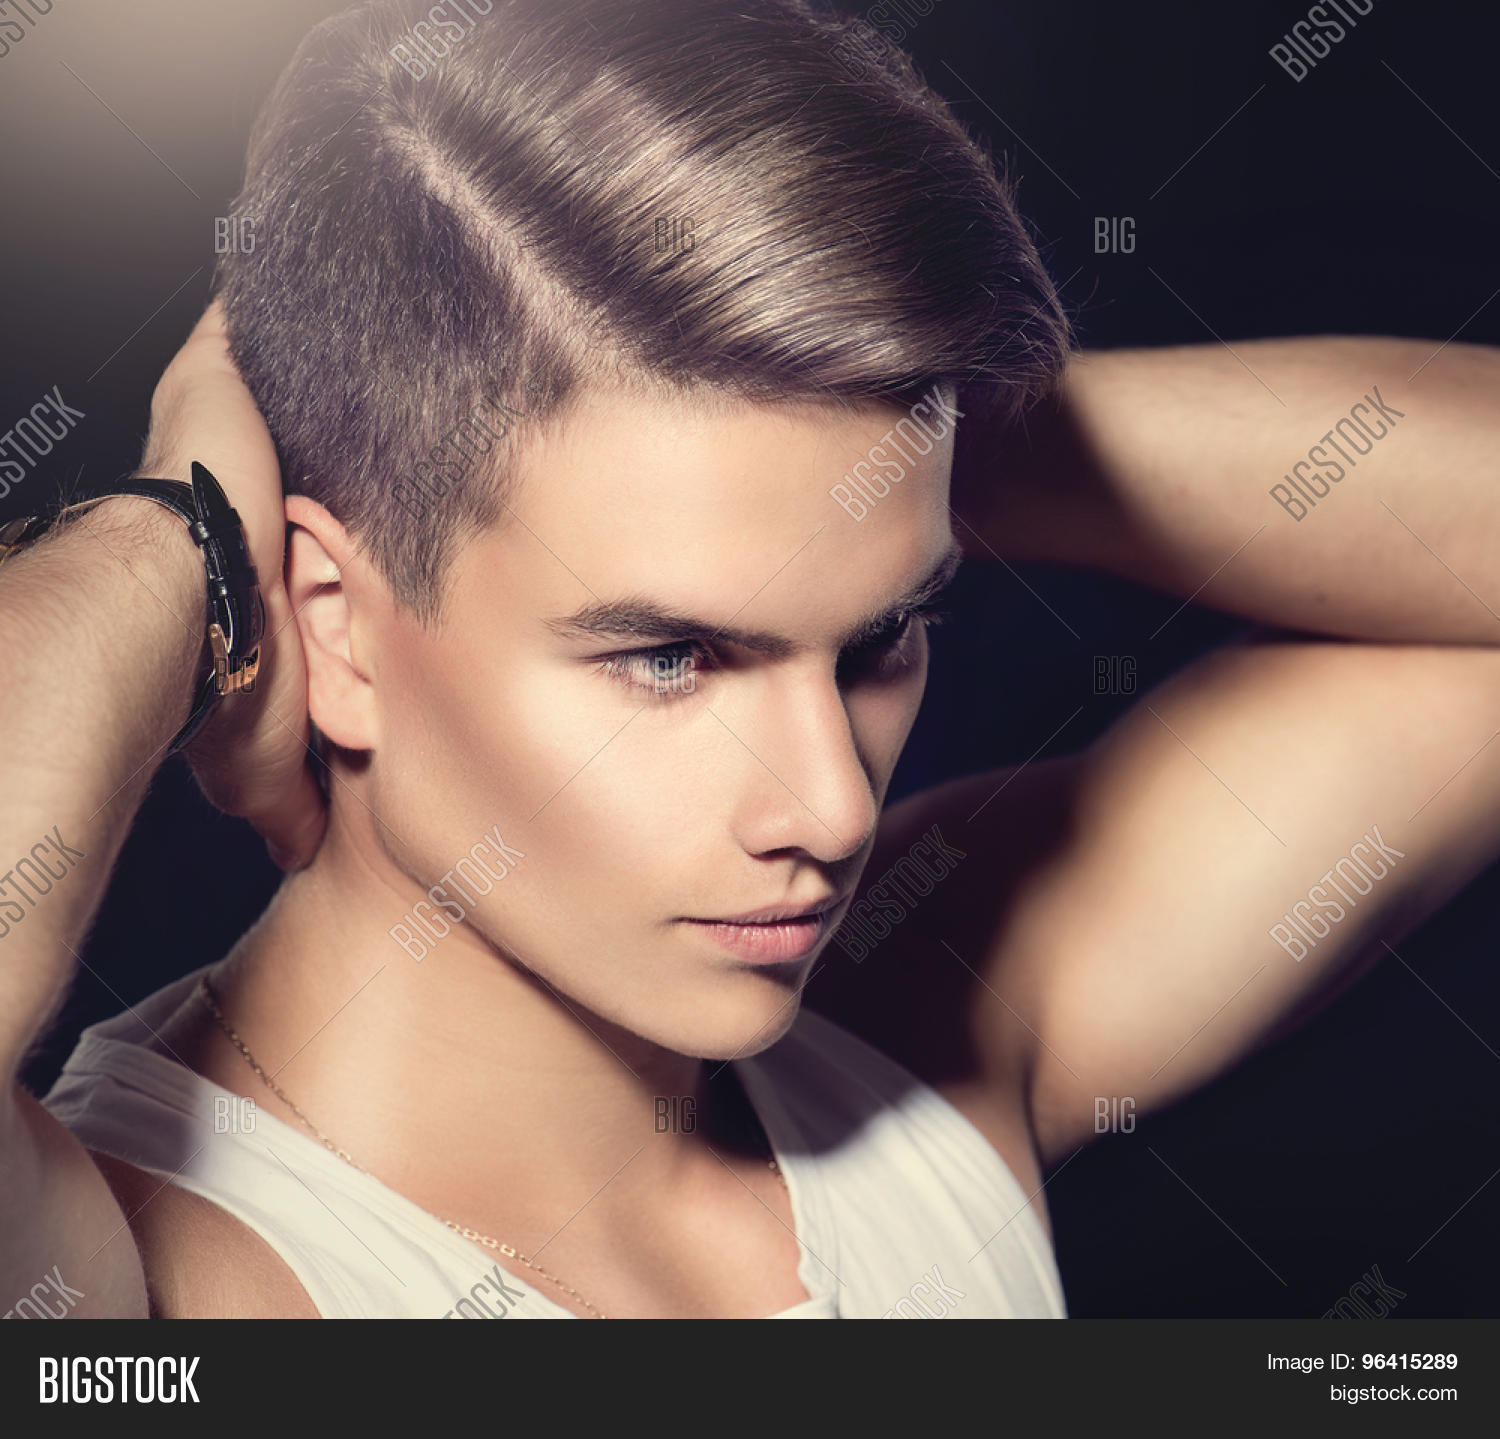 Handsome Young Man Fashion Young Image Amp Photo Bigstock